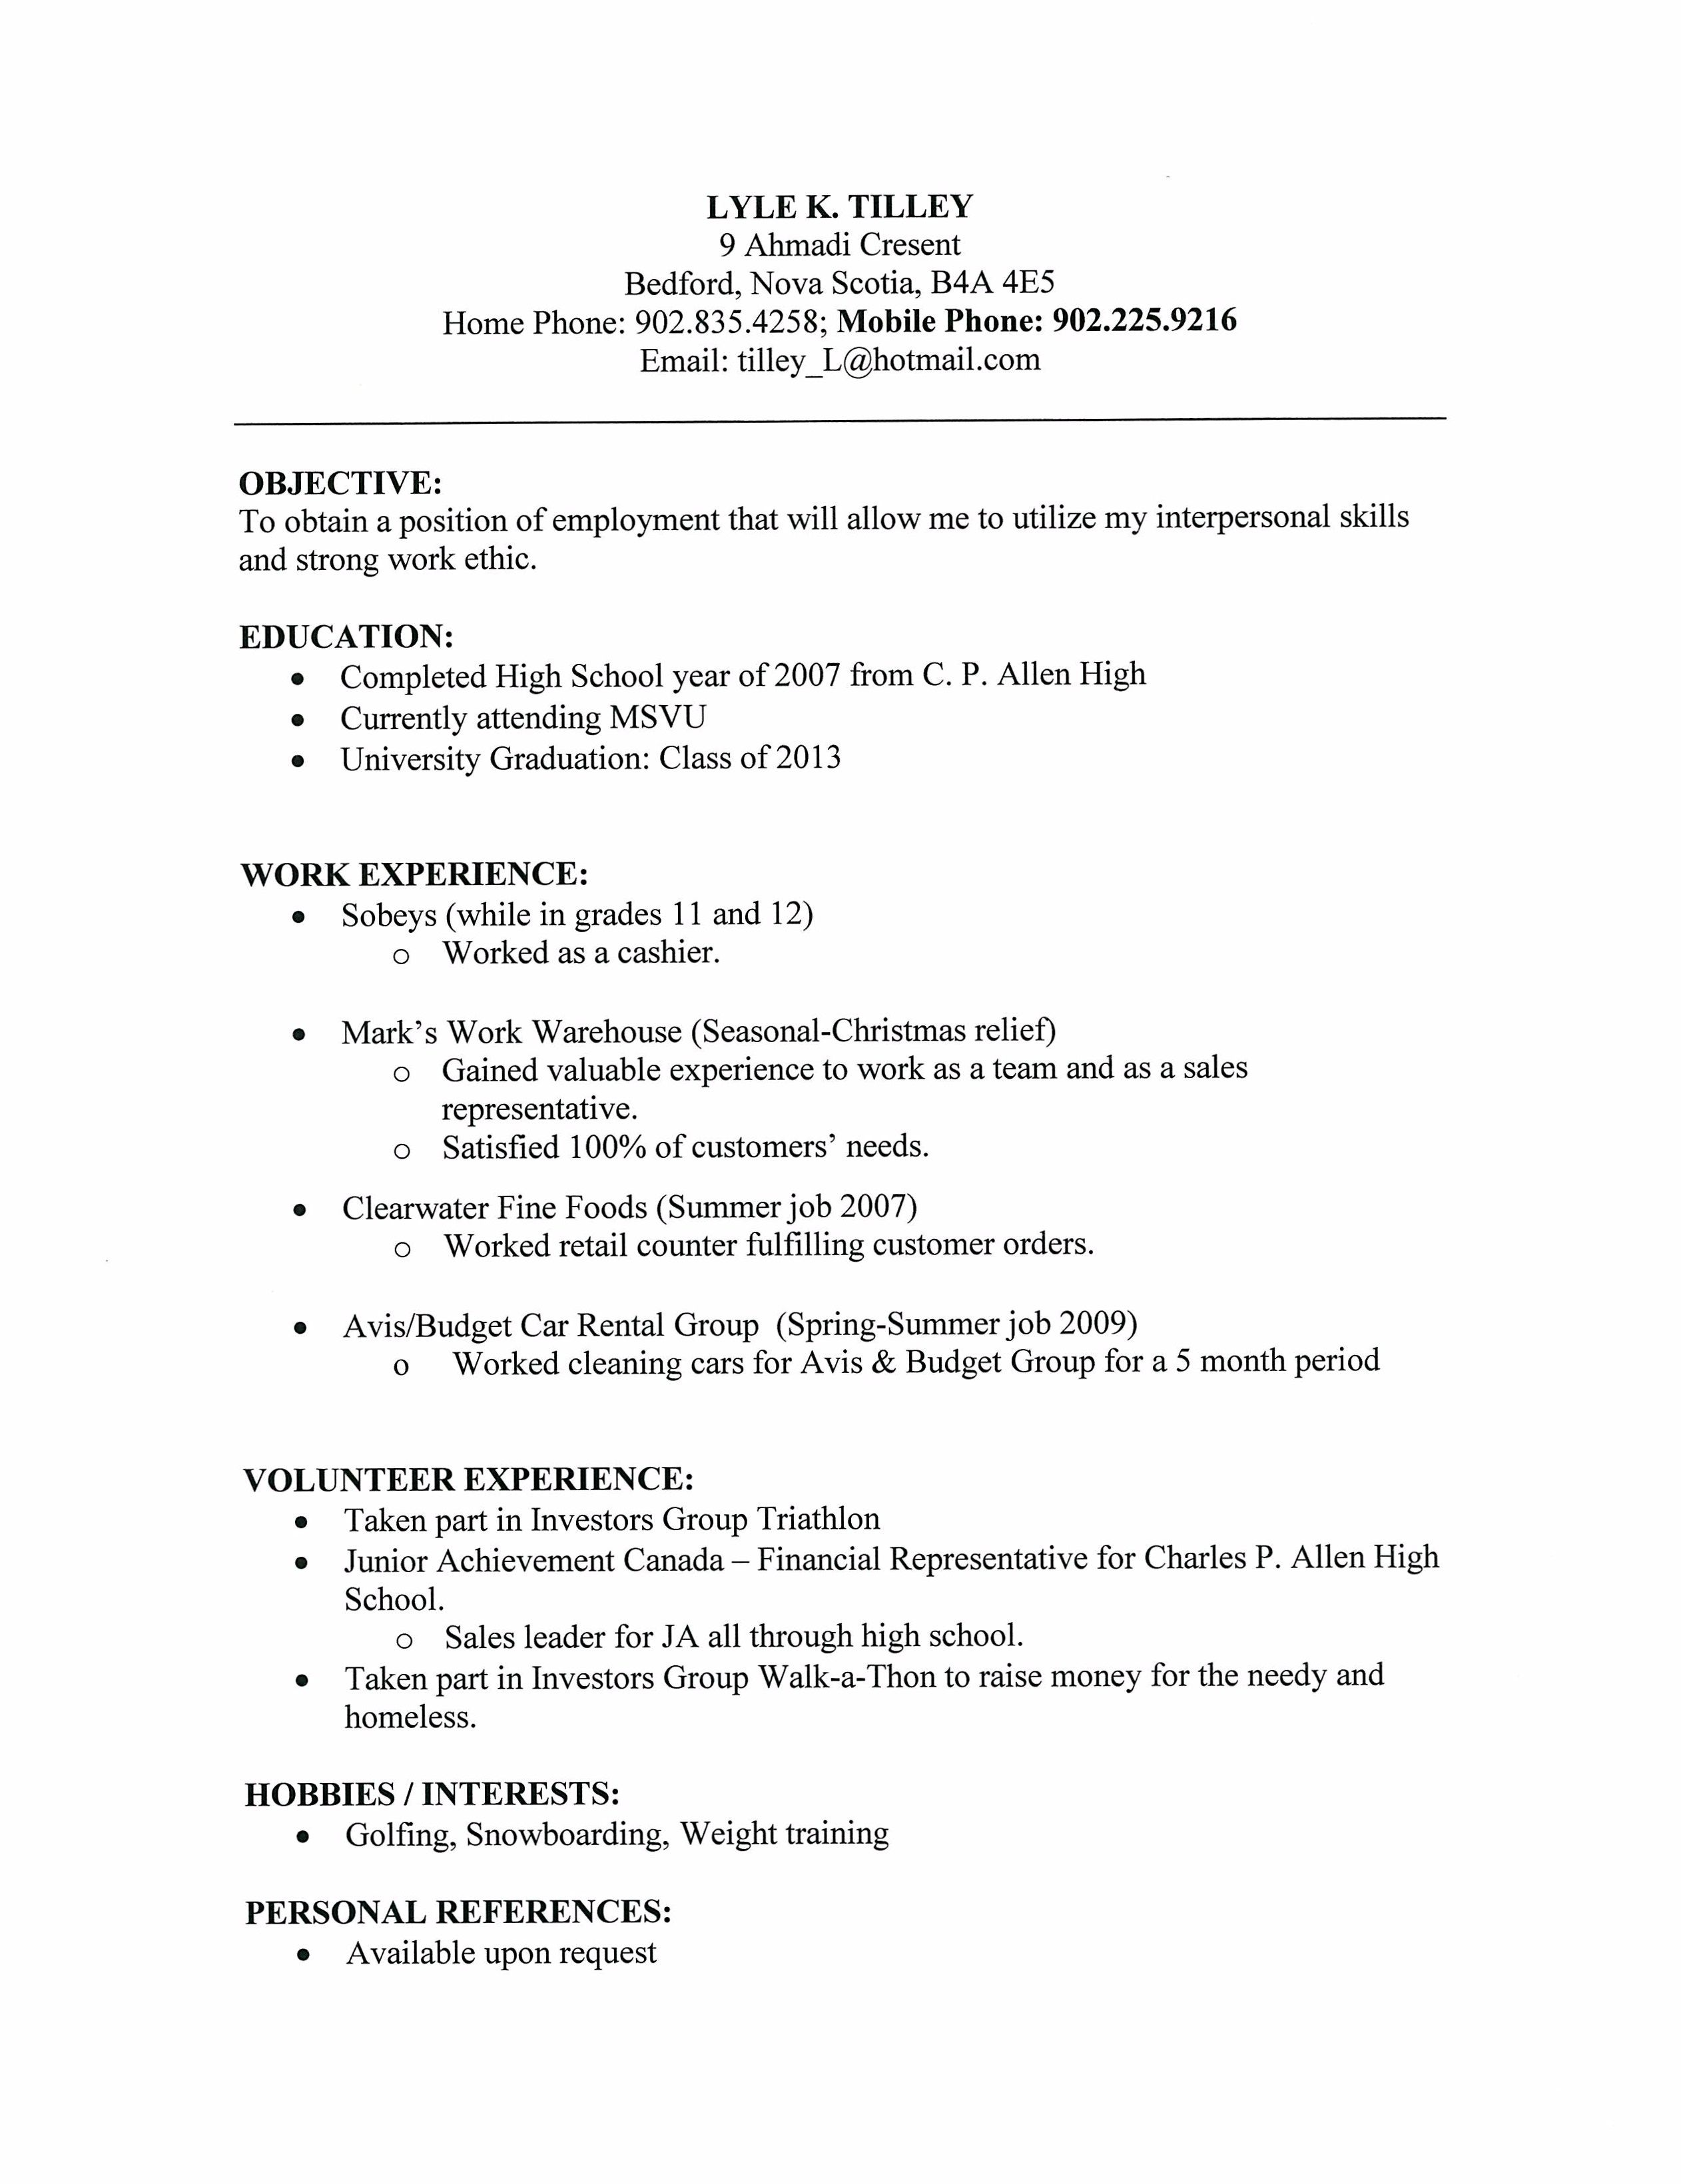 Whats A Cover Letter For A Resume Whats A Cover Letter For A - Simple cover letter template word